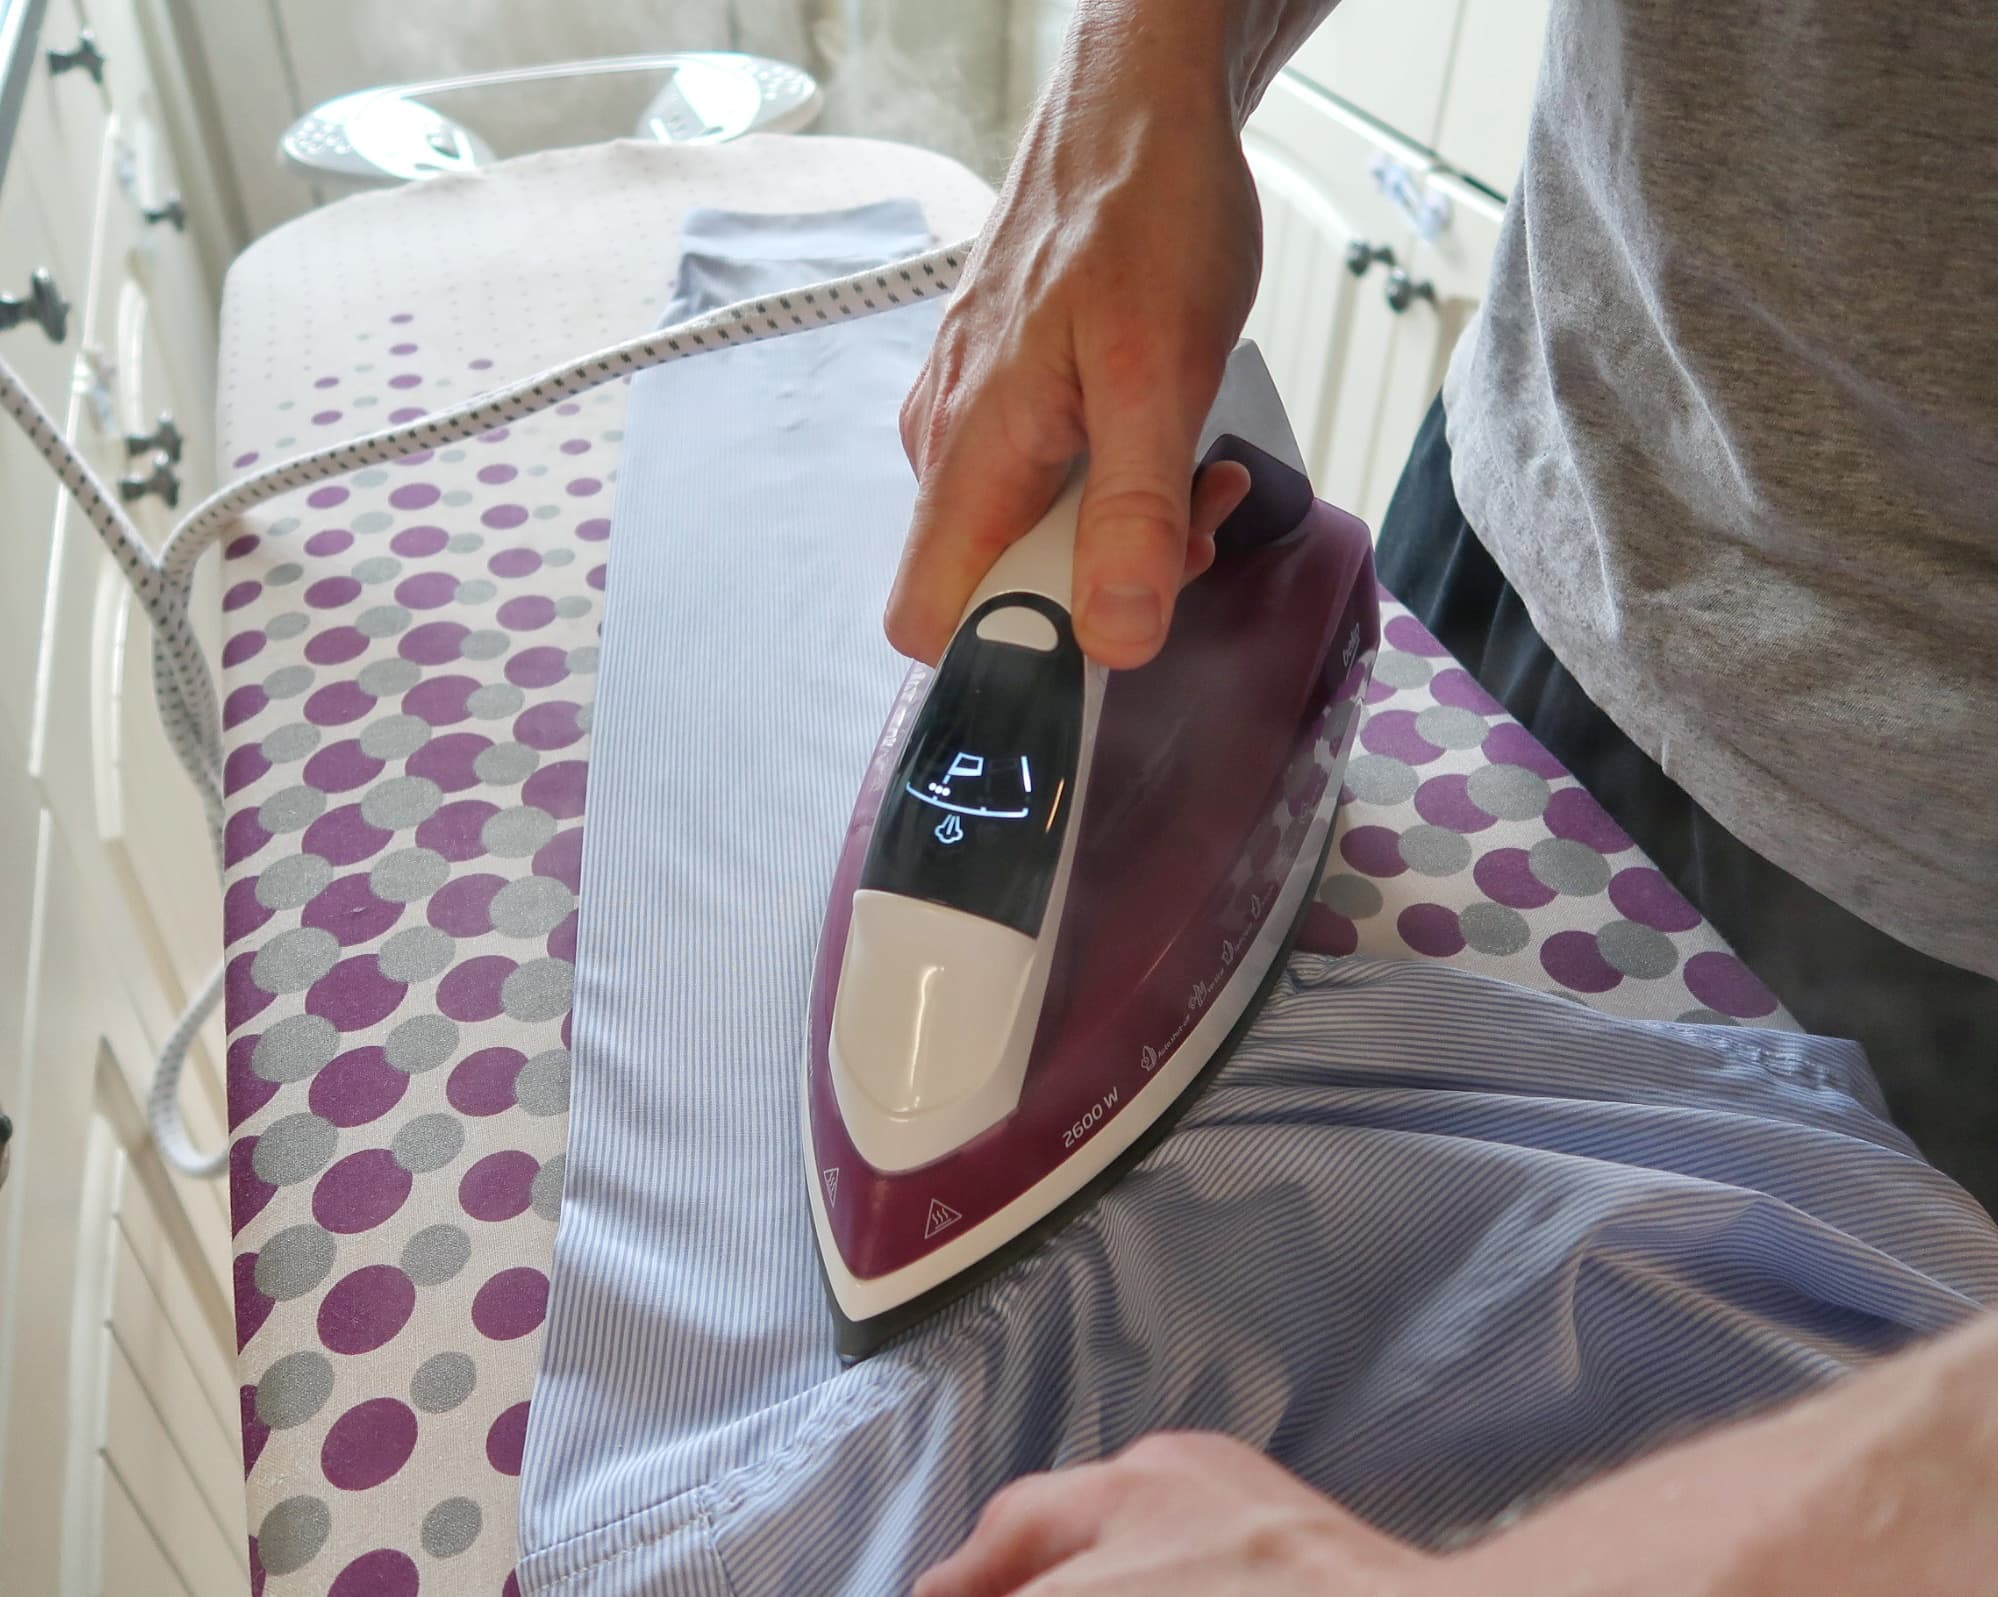 Beko steam iron in action